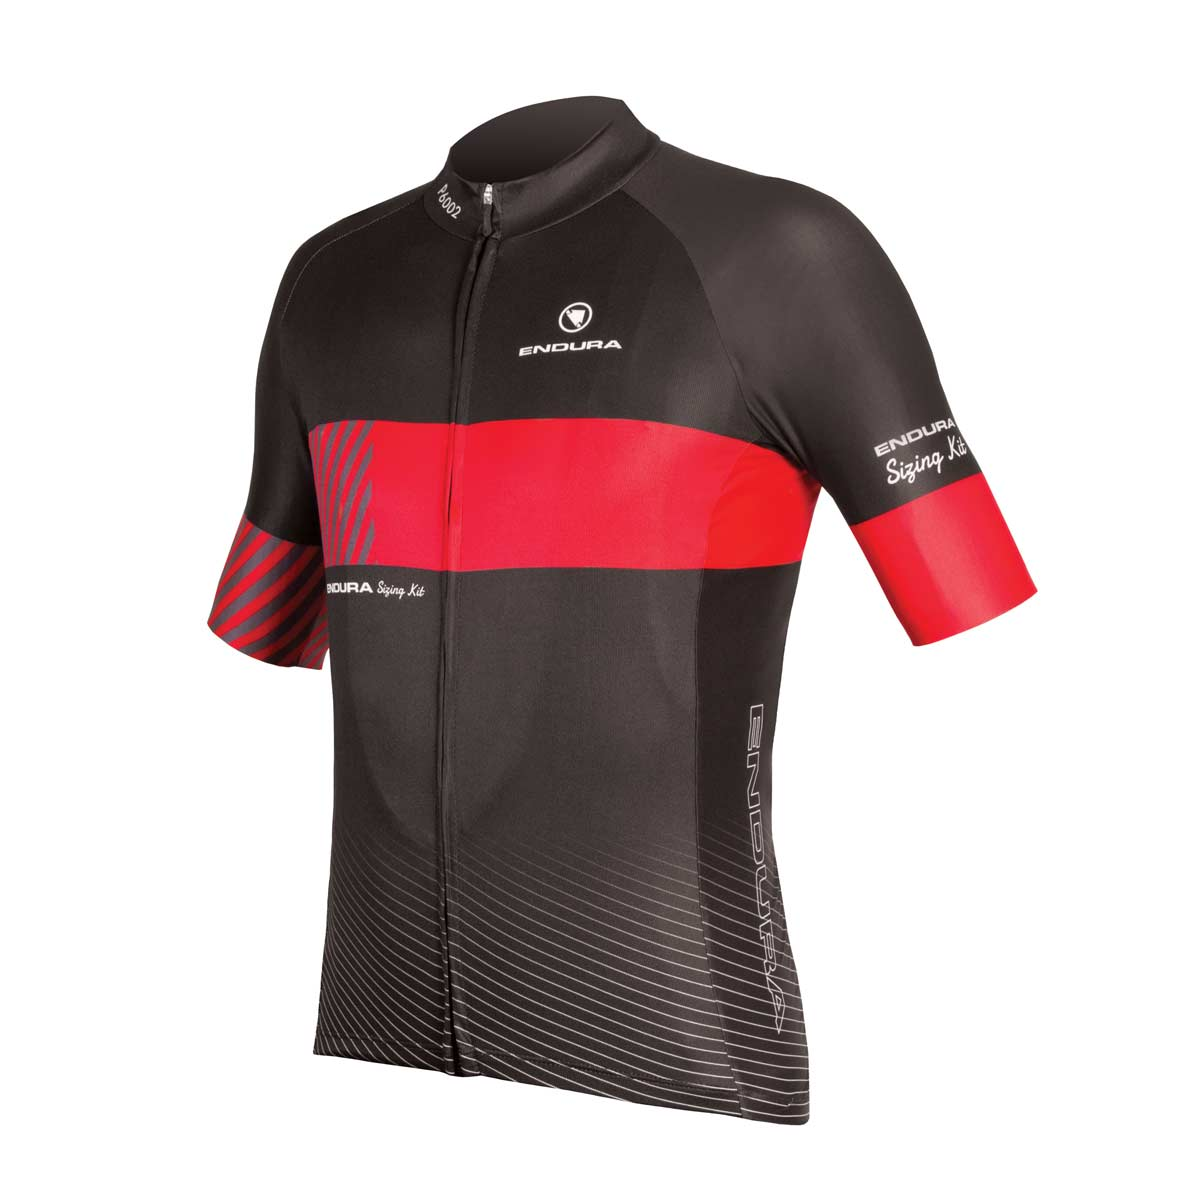 Custom Cycling Kit and Clothing | Endura